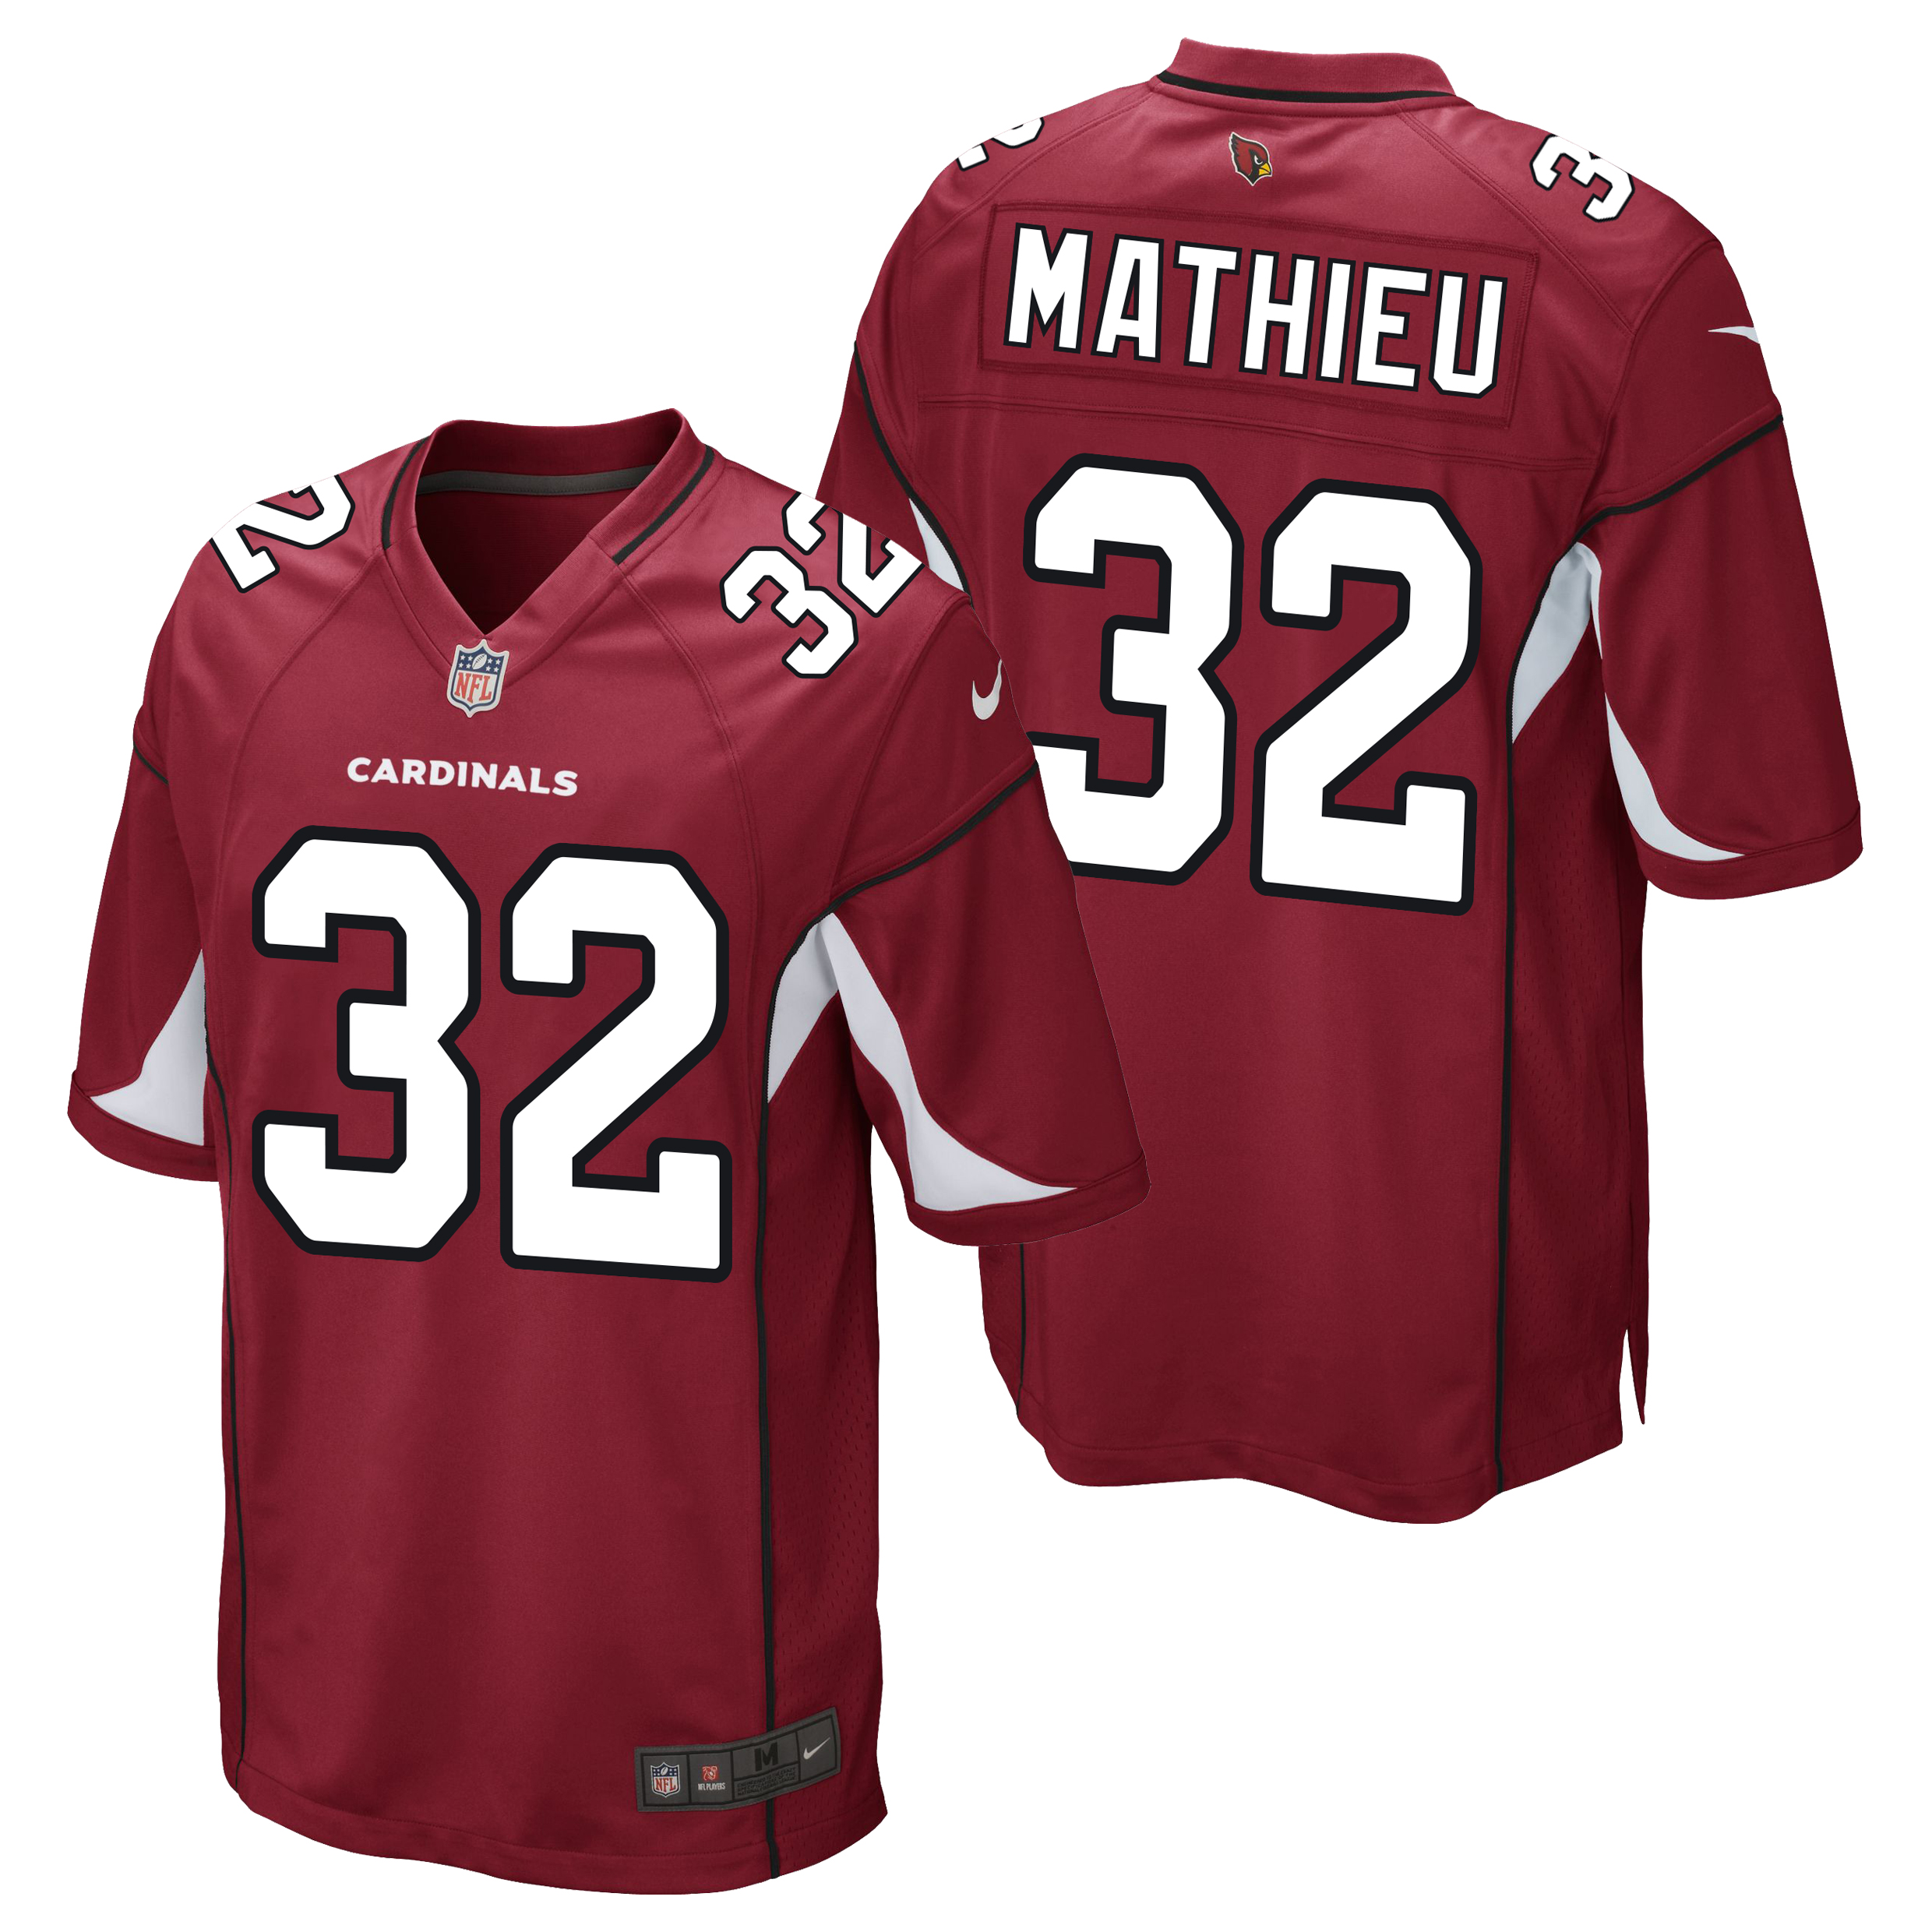 Arizona Cardinals Home Game Jersey - Tyrann Mathieu